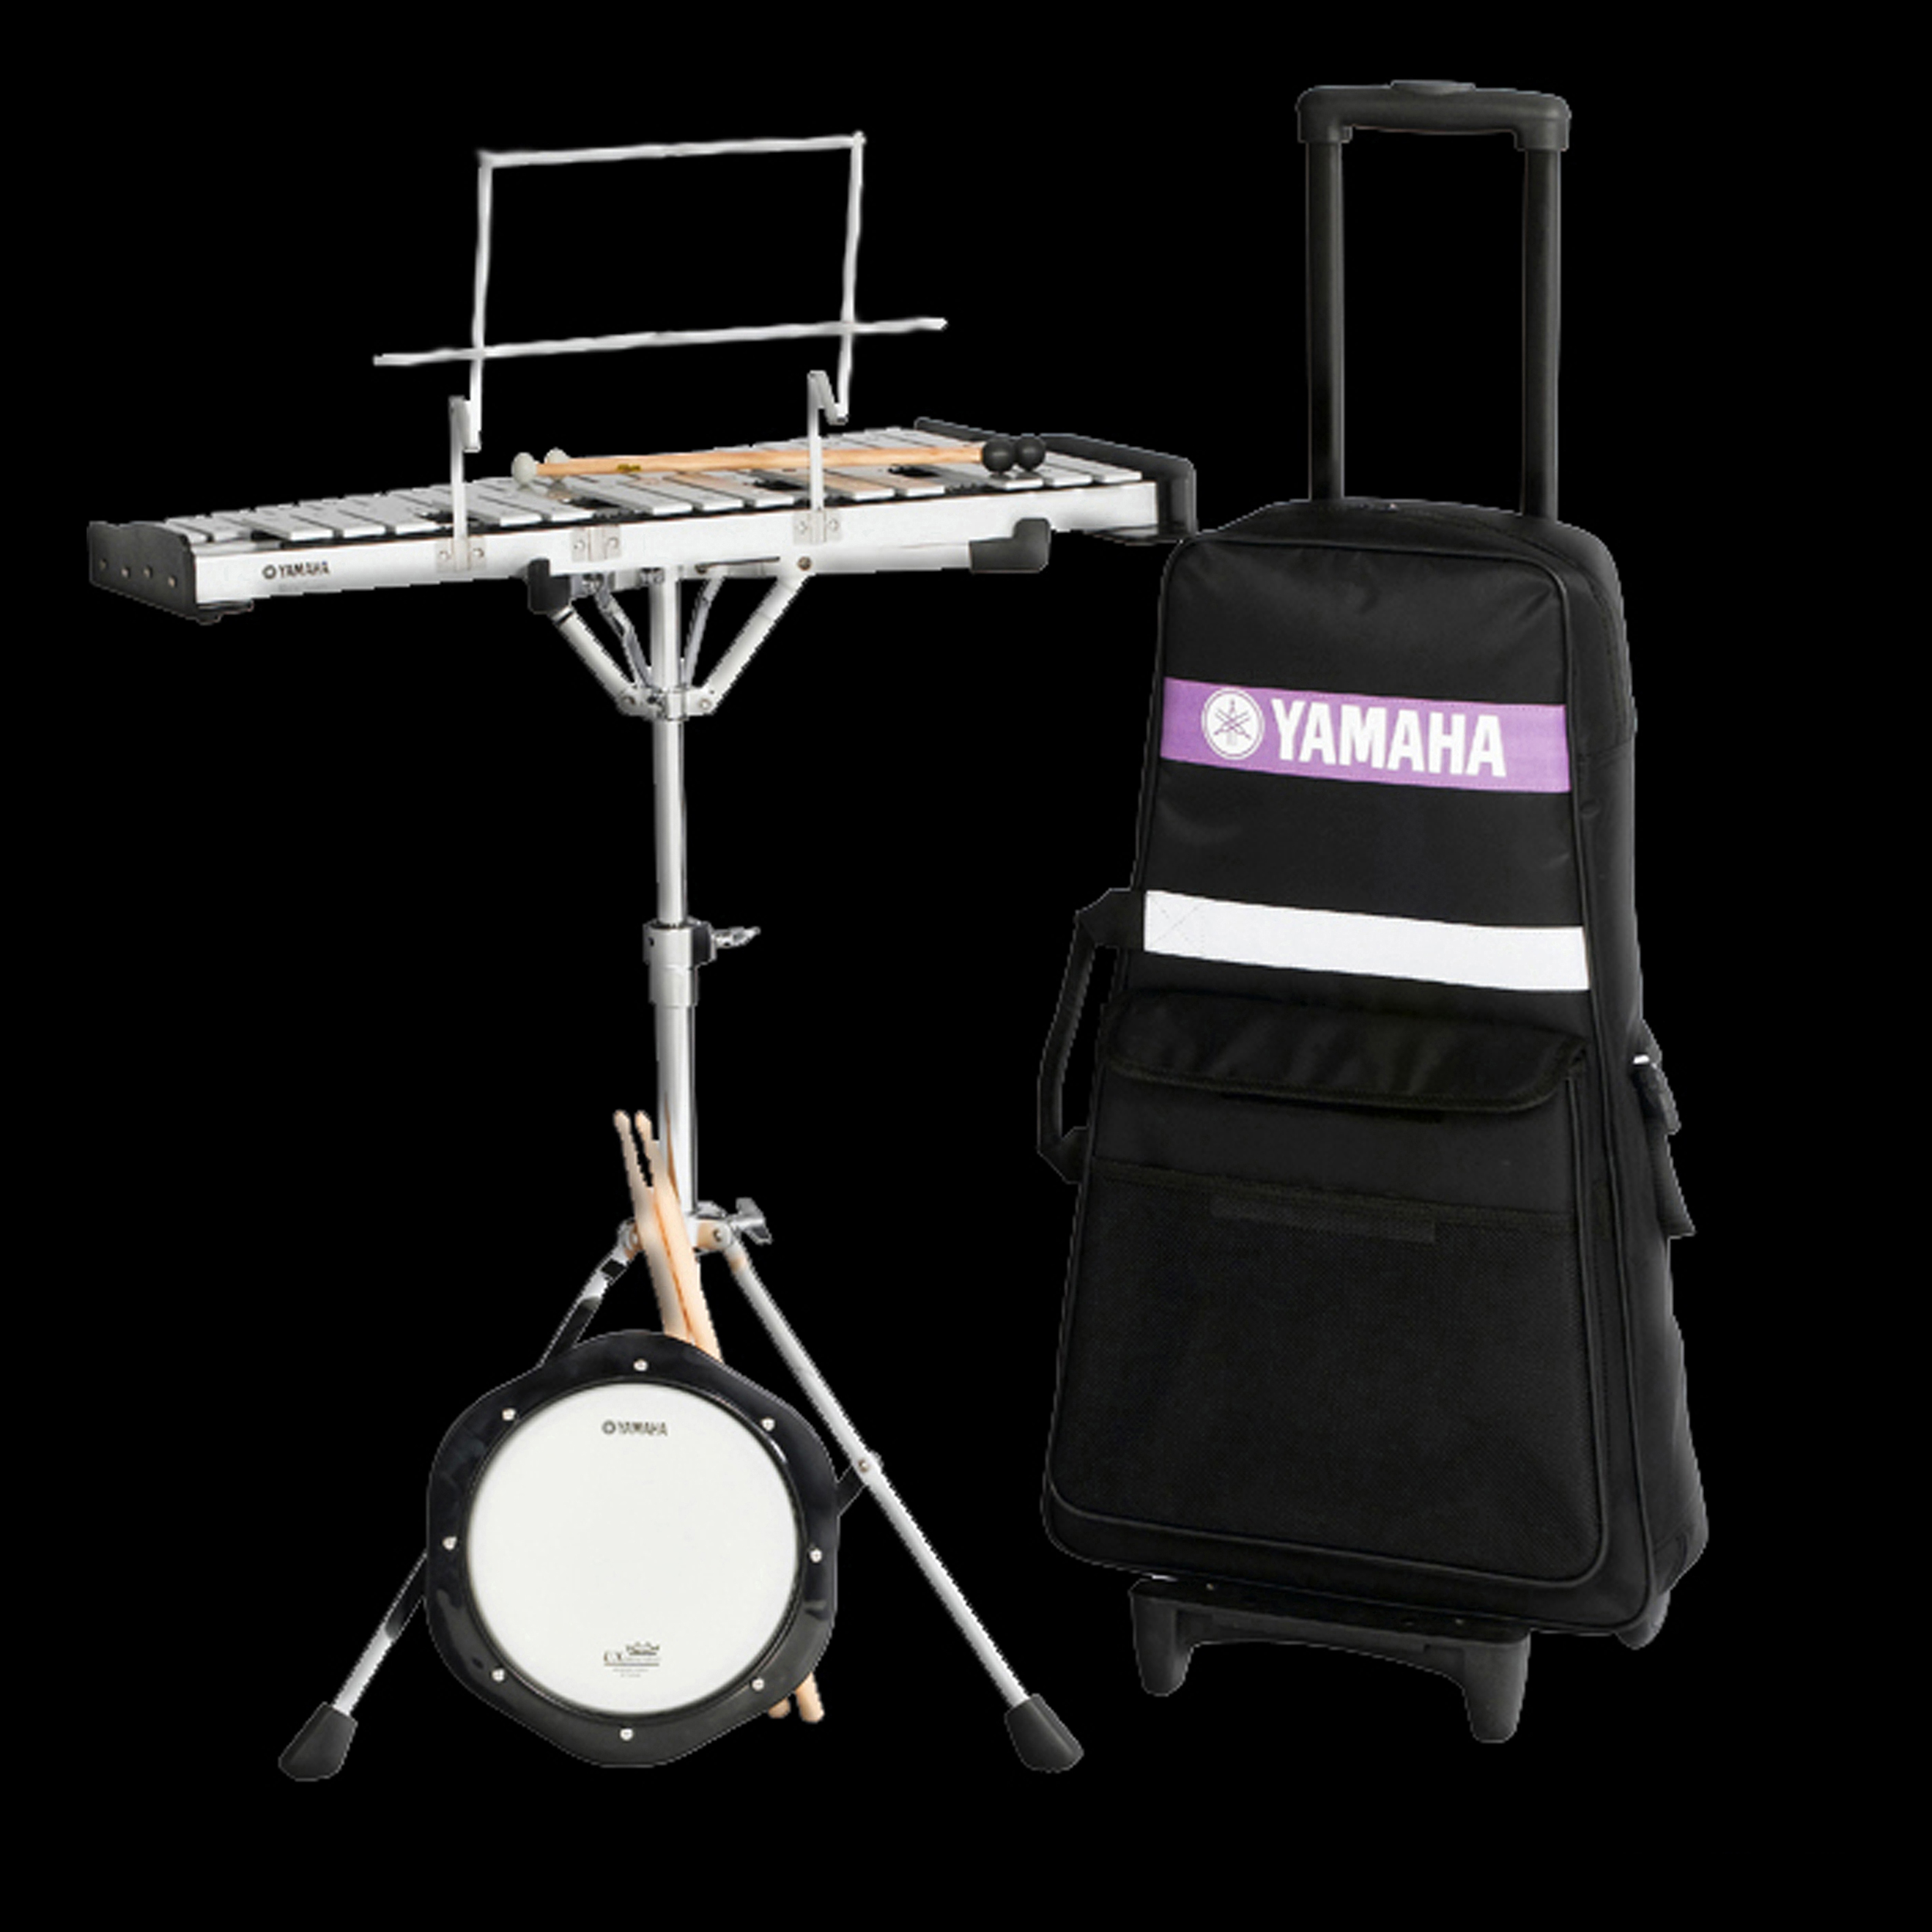 Yamaha spk 275r student bell kit with rolling cart ebay for Yamaha student bell kit with backpack and rolling cart